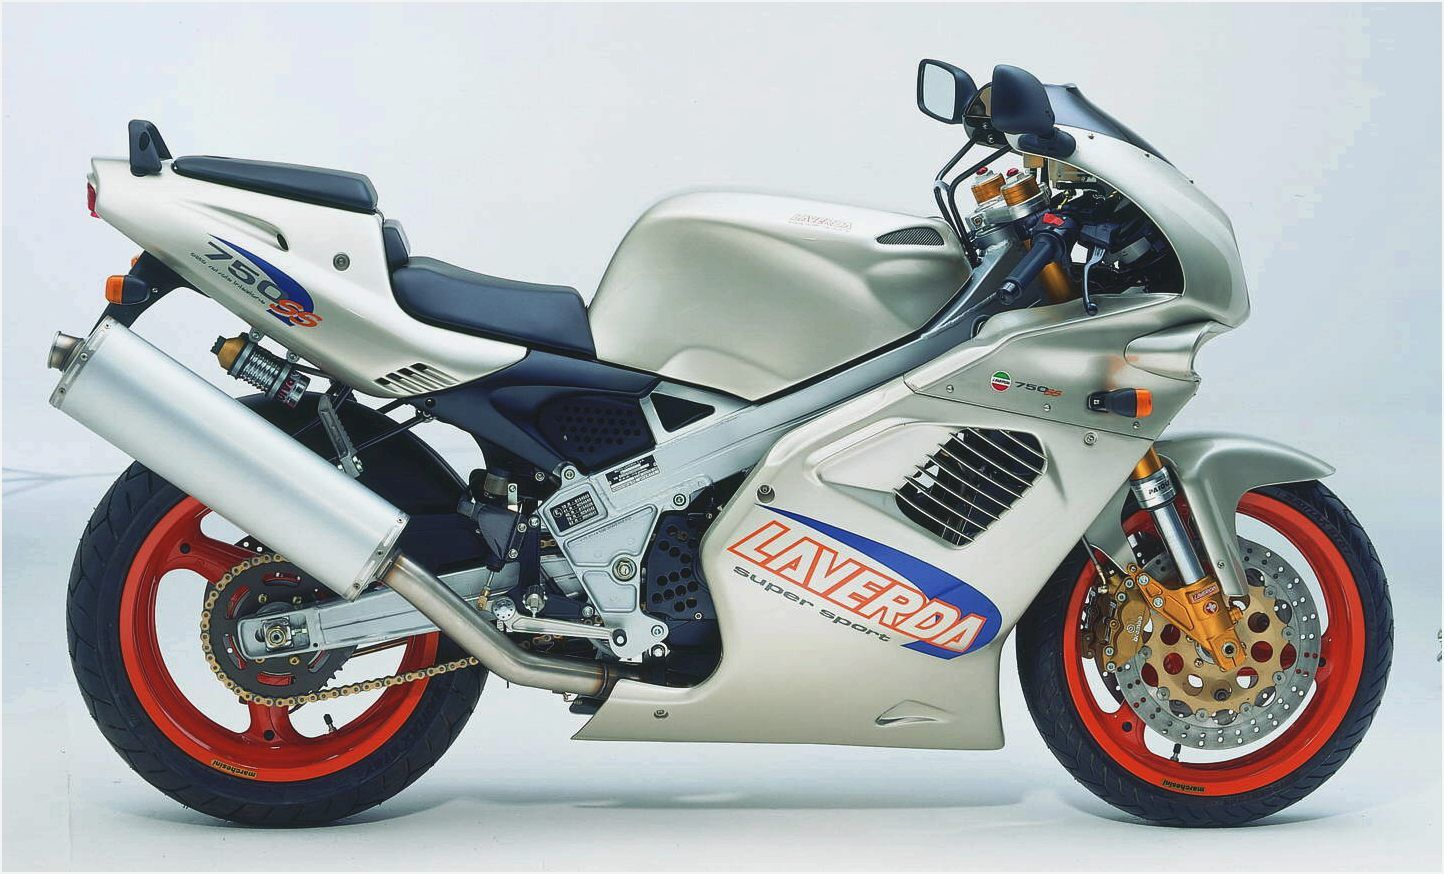 Laverda 650 Ghost Strike